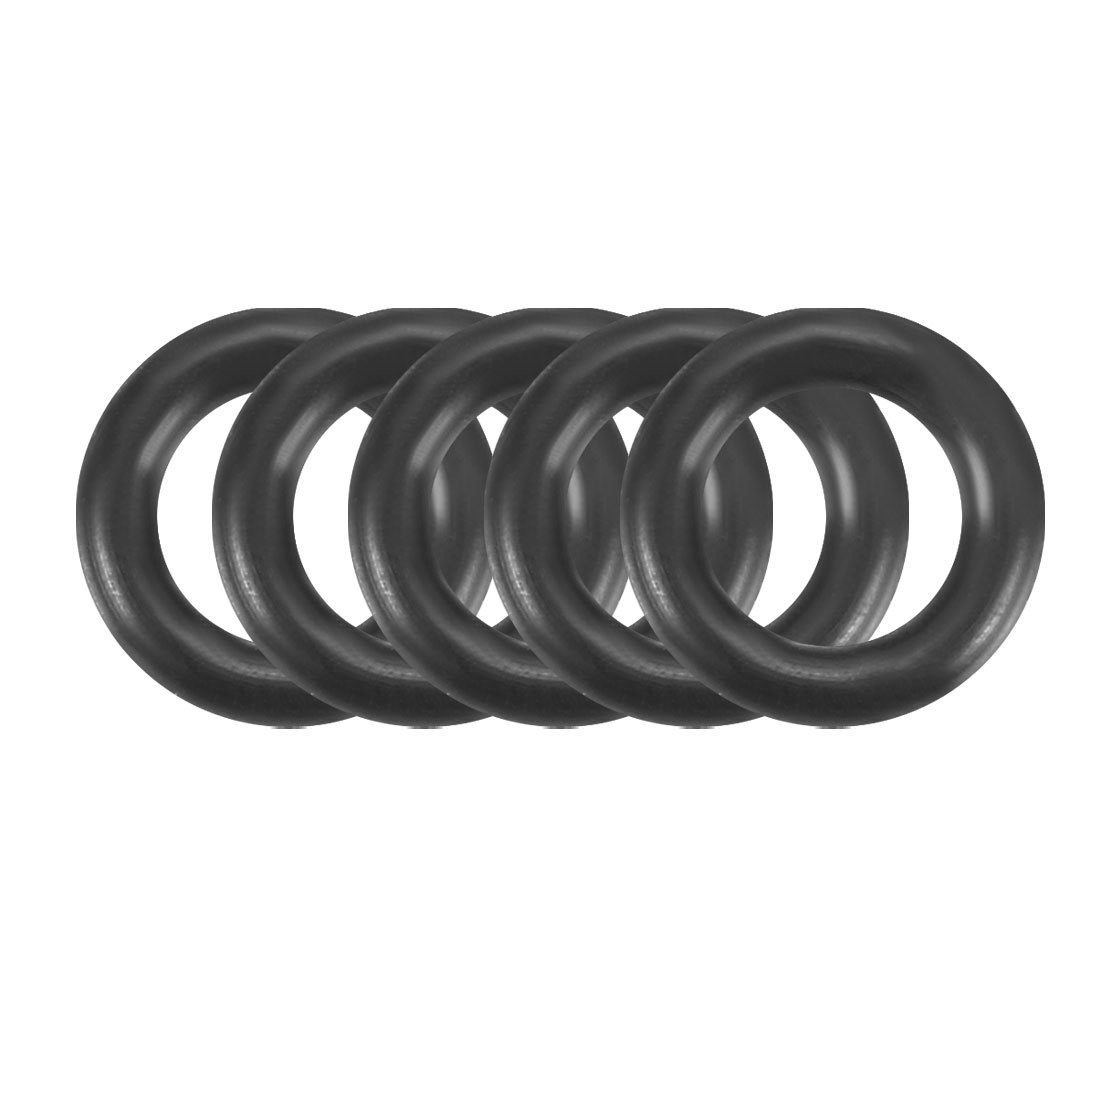 100Pcs 6x1.2mm Nitrile Rubber O-rings Heat Resistant Sealing Ring Grommets Black